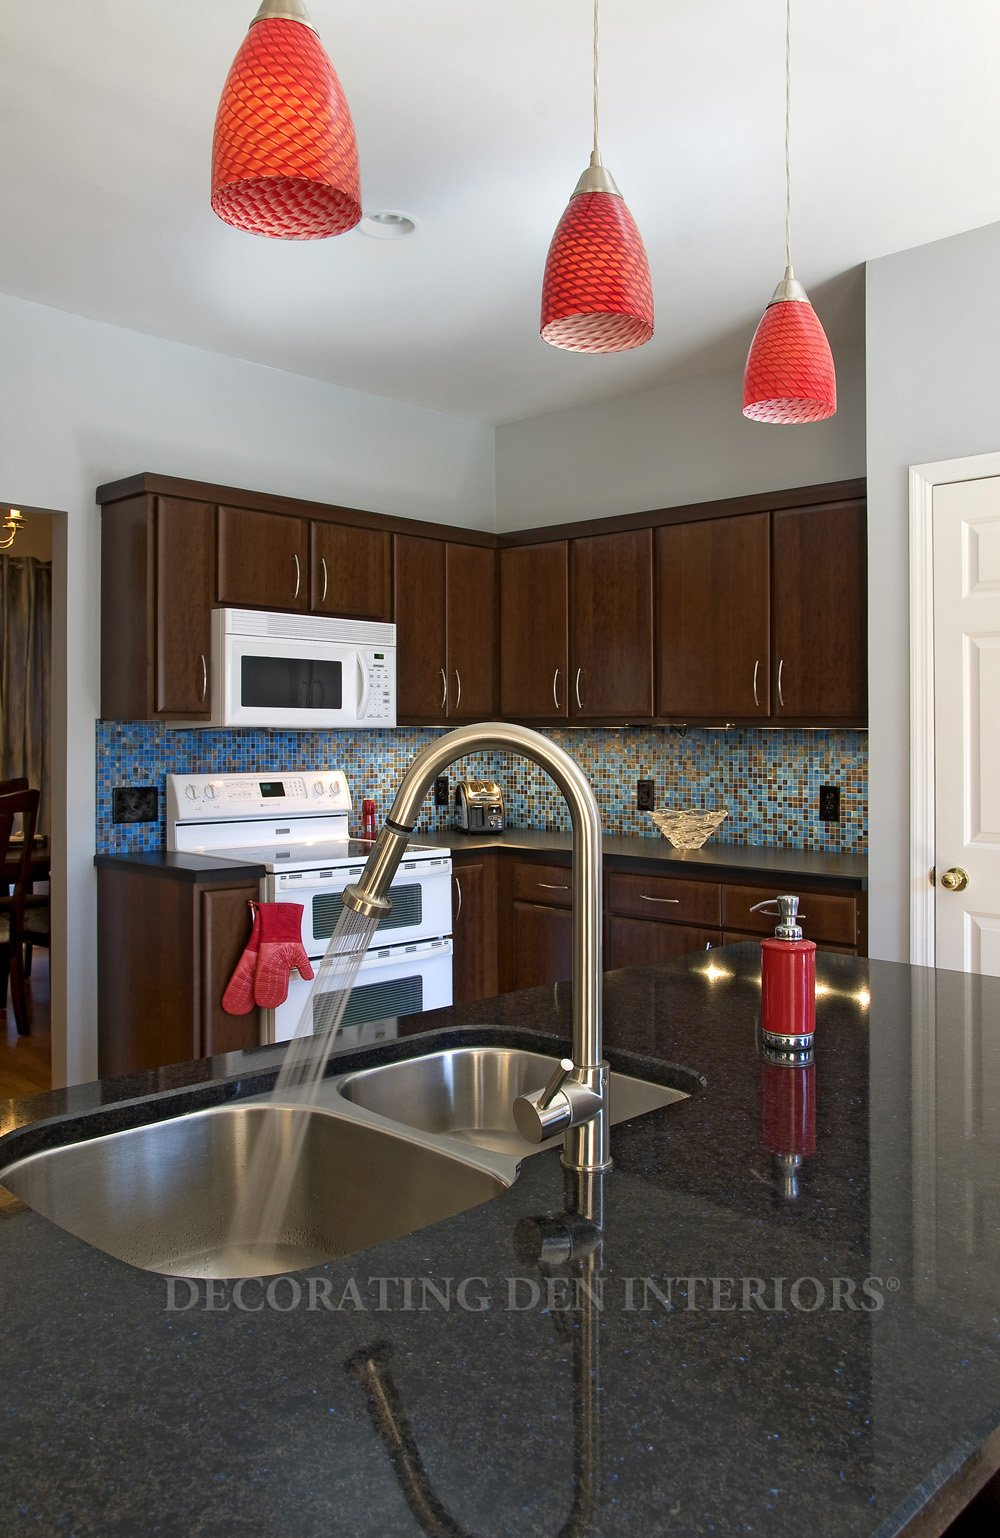 How to Hang Kitchen Pendant Lights  Christine Ringenbach  Your Henderson Interior Decorator